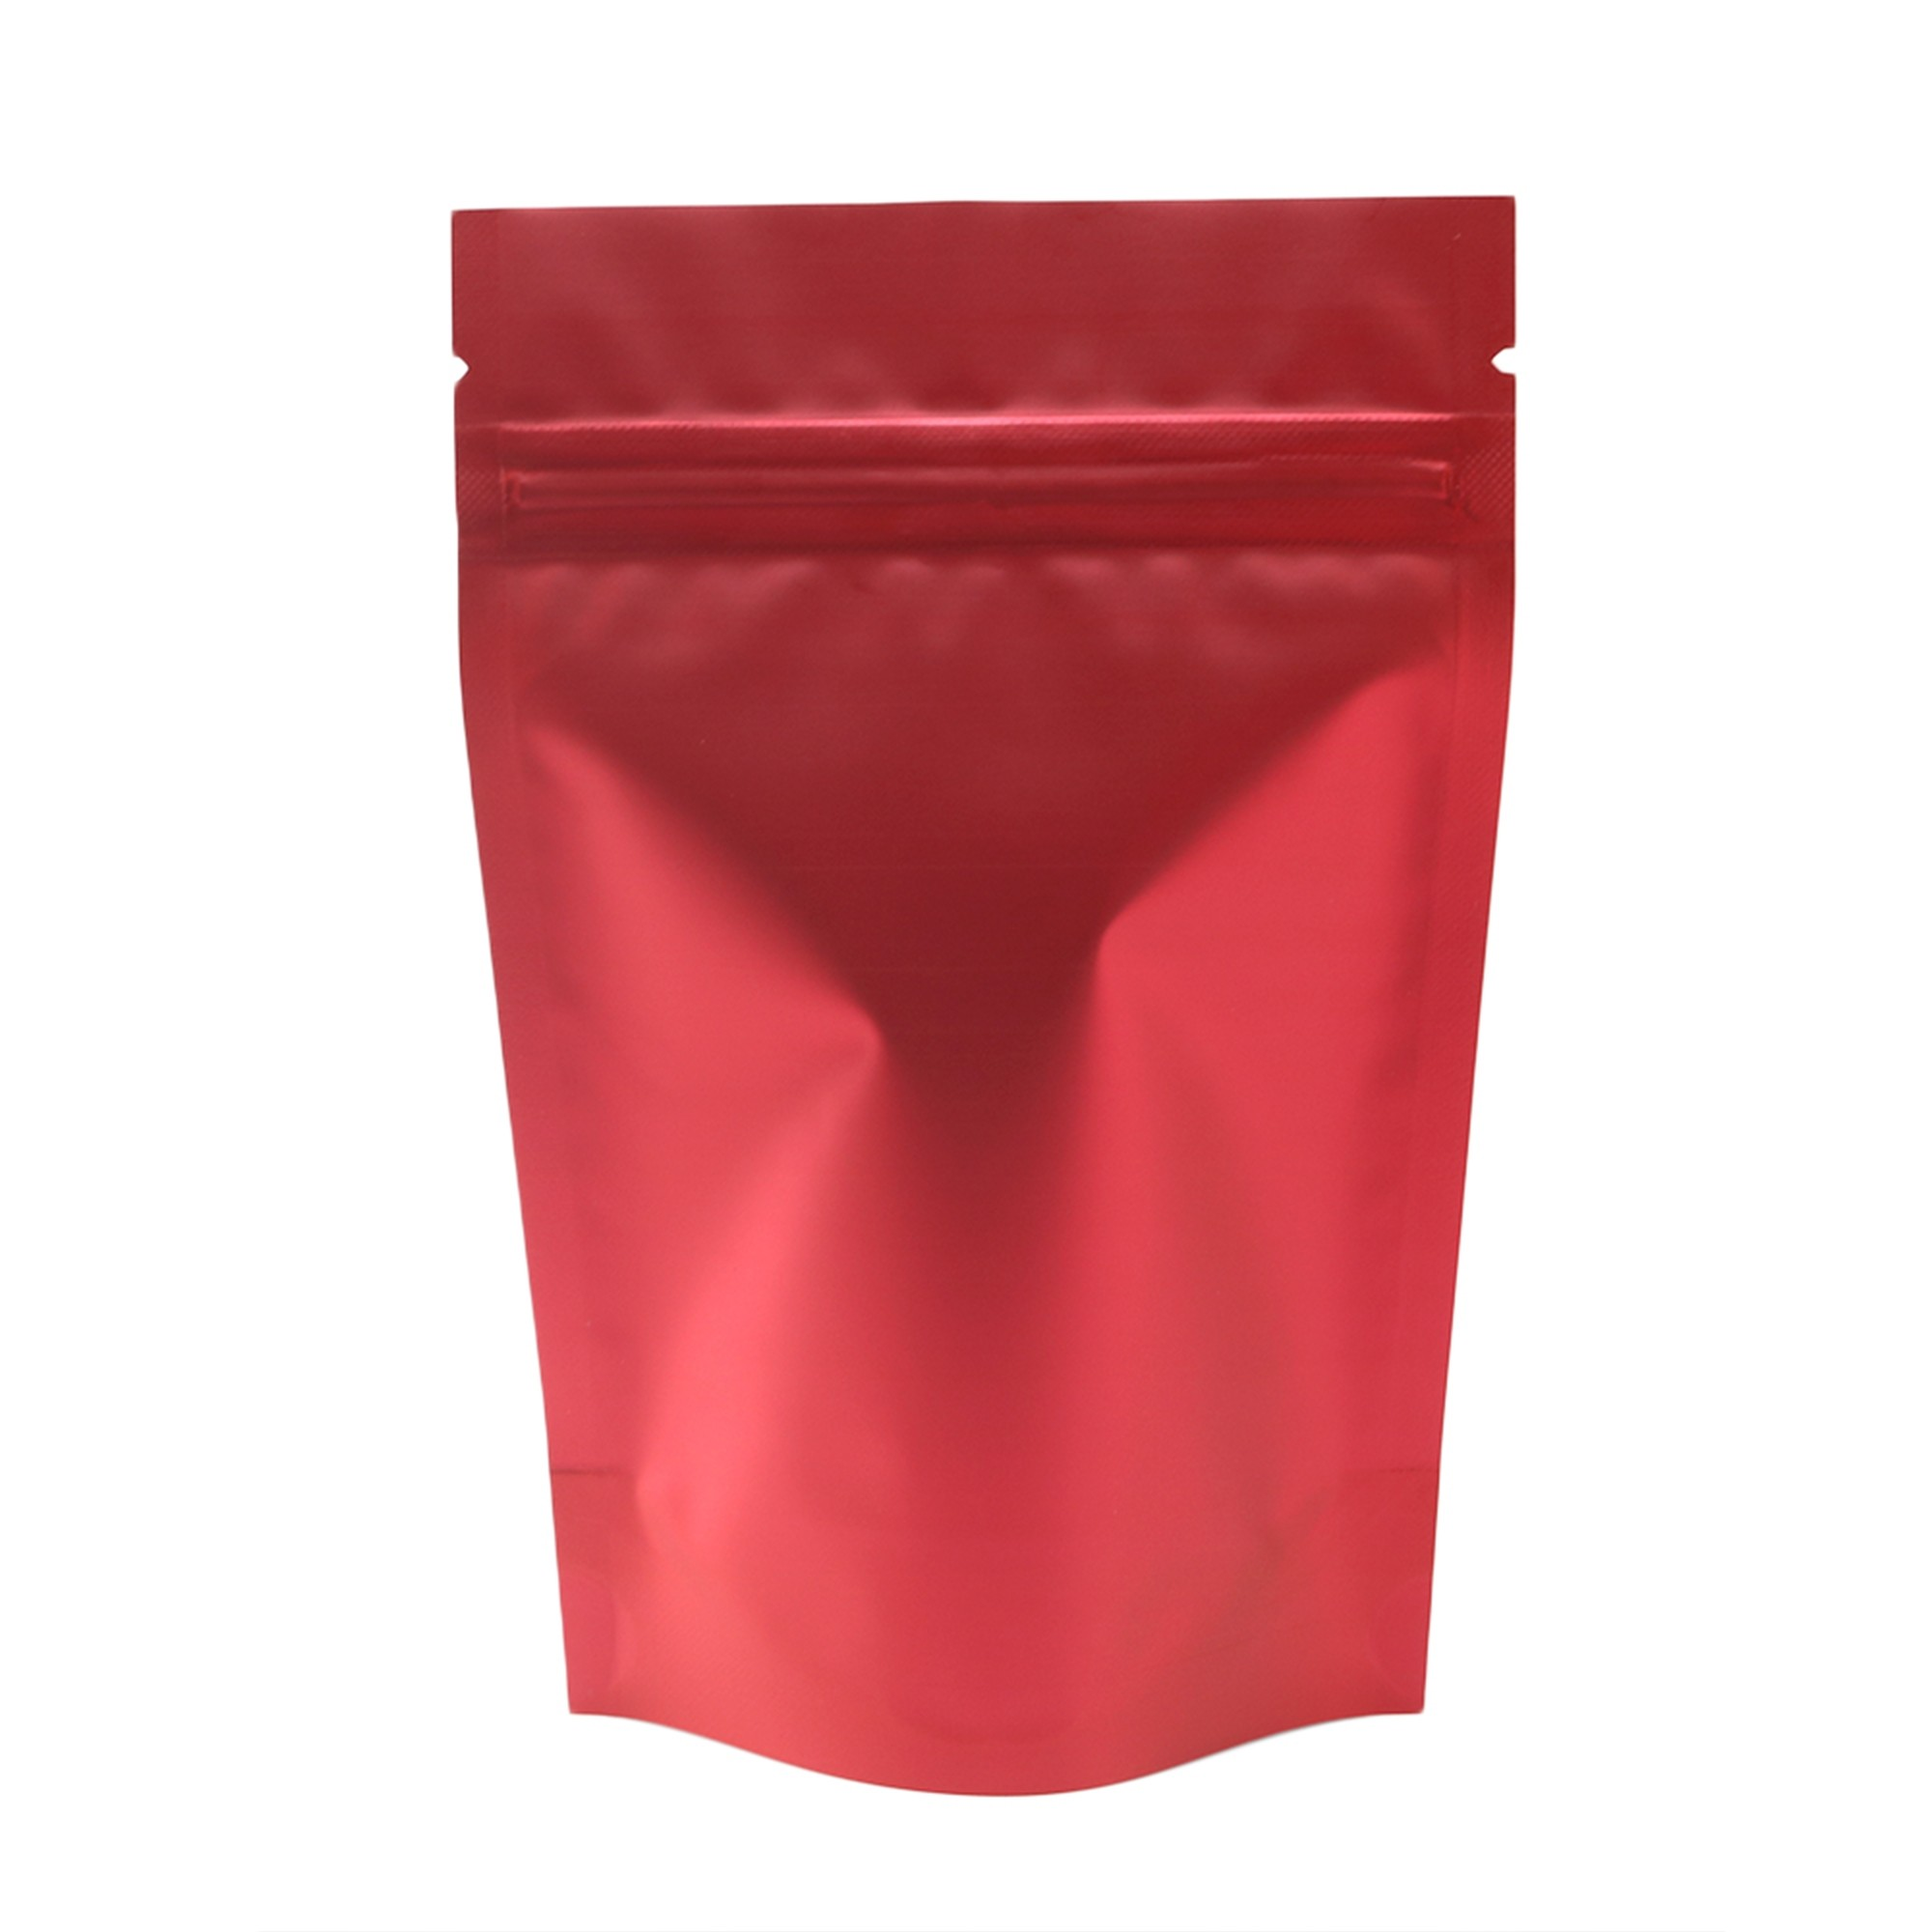 Matte Double-Sided Red Metallic Foil Stand-Up Ziplock Bags 12 cm x 18 cm [4.7 inches x 7.1 inches] (500 Bags/Lot)